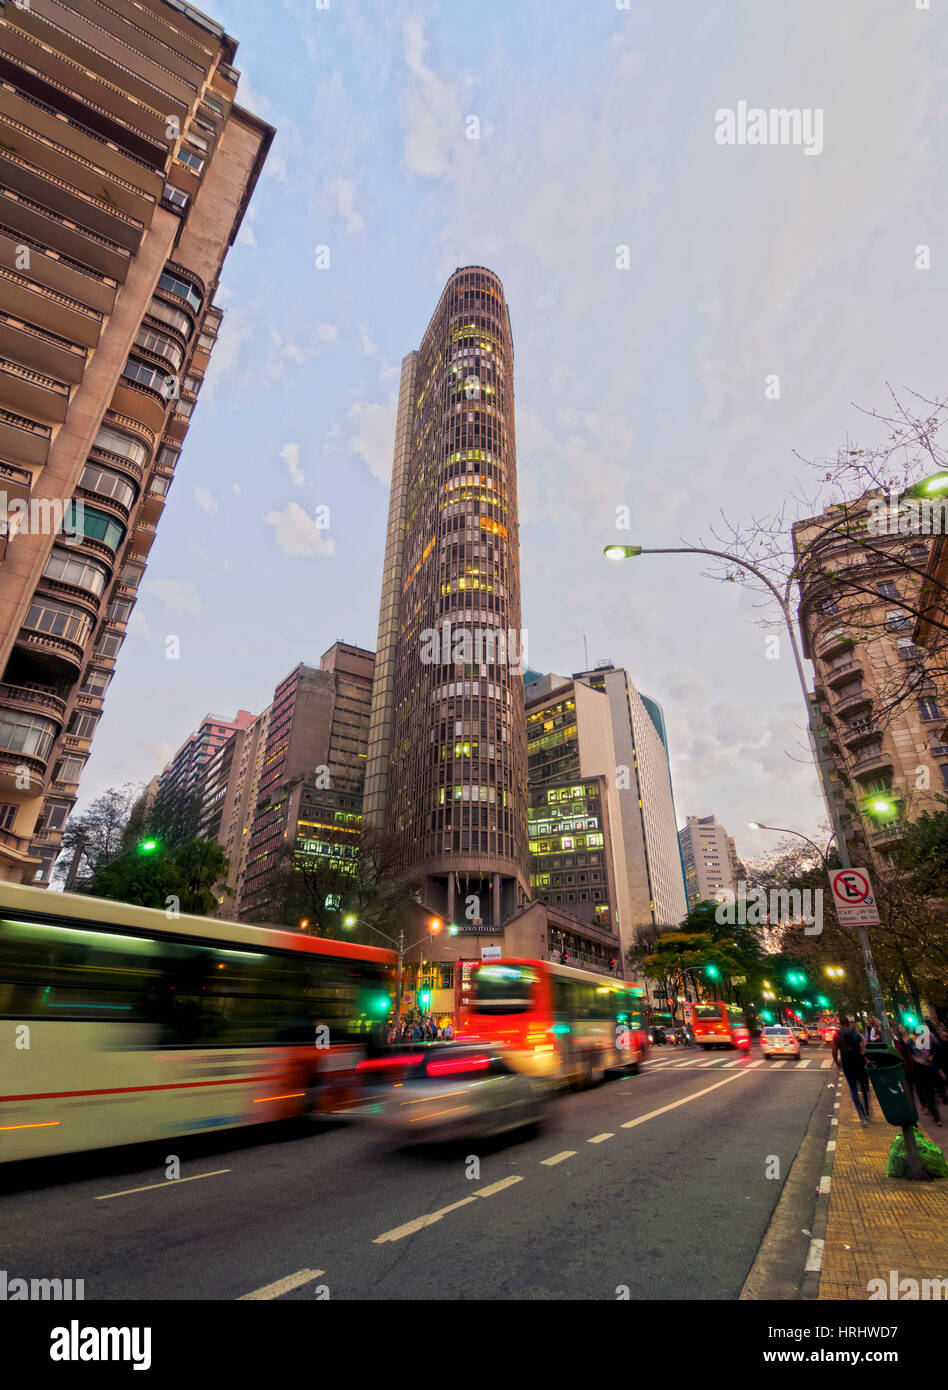 Twilight view of the Ipiranga Avenue and the Edificio Italia, City of Sao Paulo, State of Sao Paulo, Brazil - Stock Image